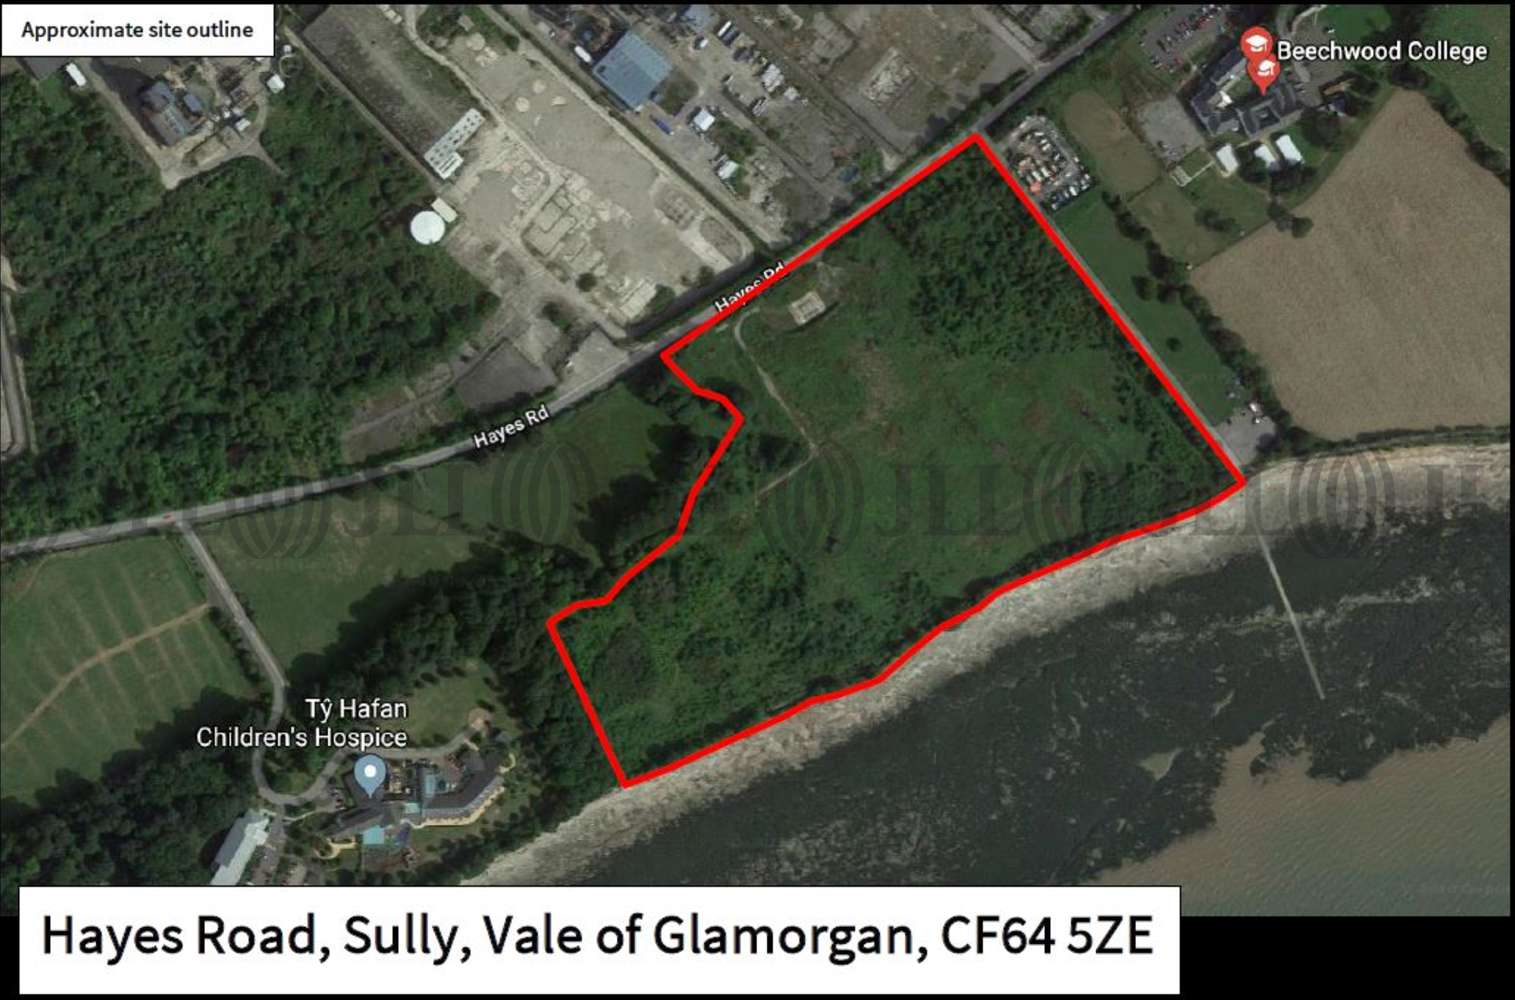 Land Penarth, CF64 5ZE - Development Land for Sale, Hayes Road, Sully, Vale of Glamorgan